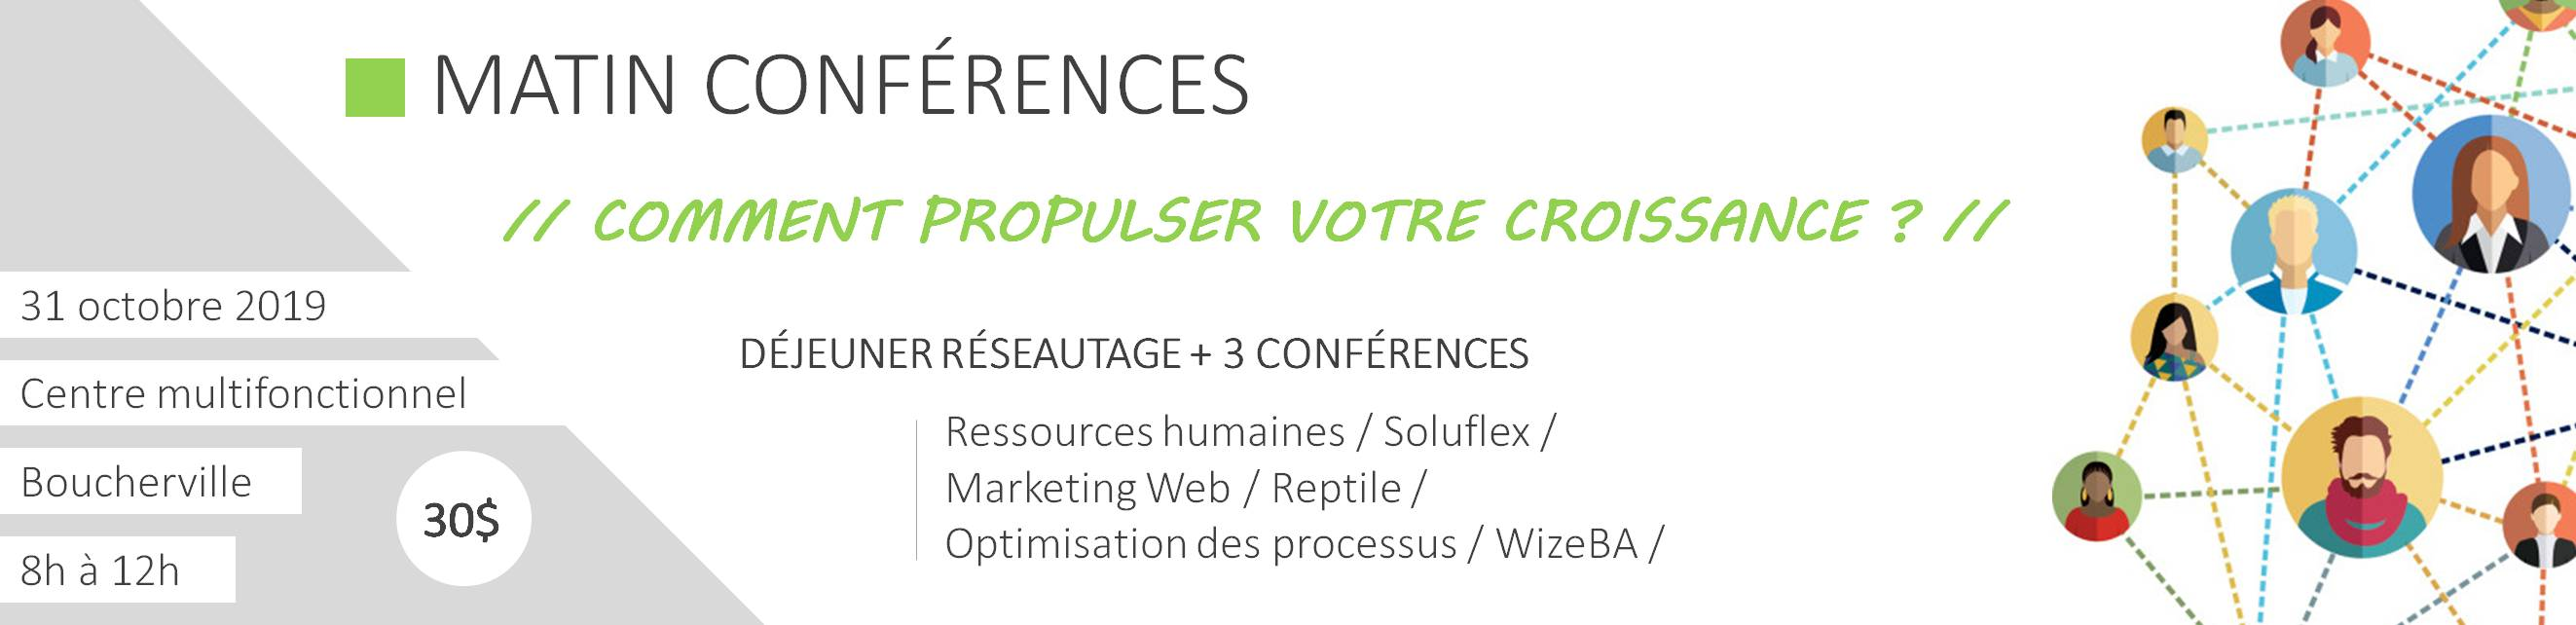 Affiche matin conférence Soluflex SW